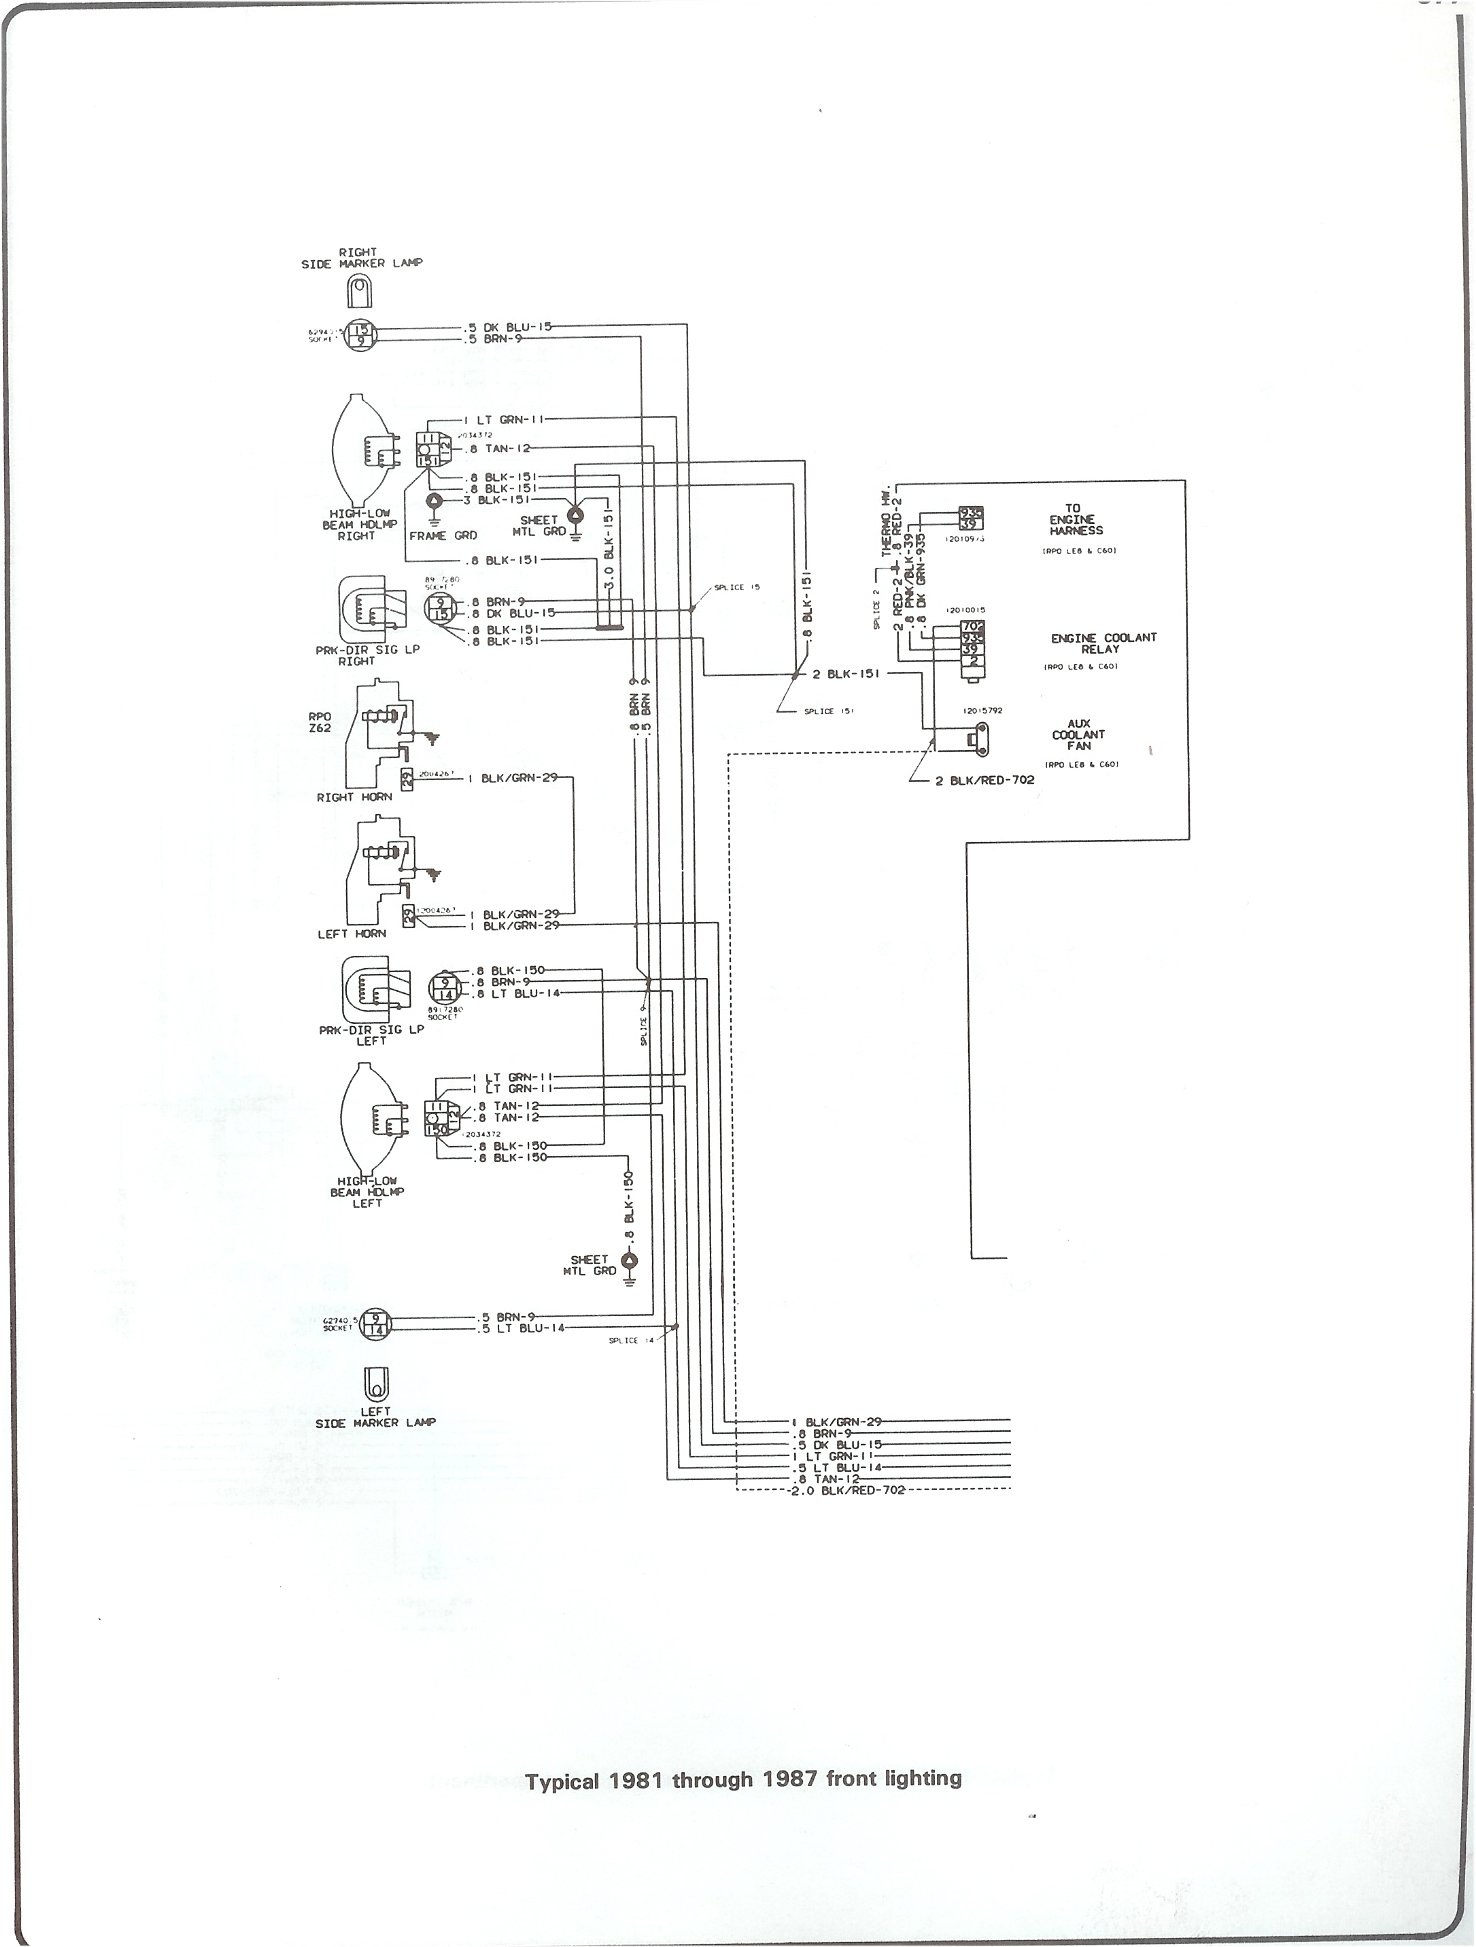 1985 Gm Headlight Switch Diagram Opinions About Wiring Chevrolet S10 Free Download 87 Jimmy Detailed Schematics Rh Lelandlutheran Com 2013 Chevy Truck Headlamp Light